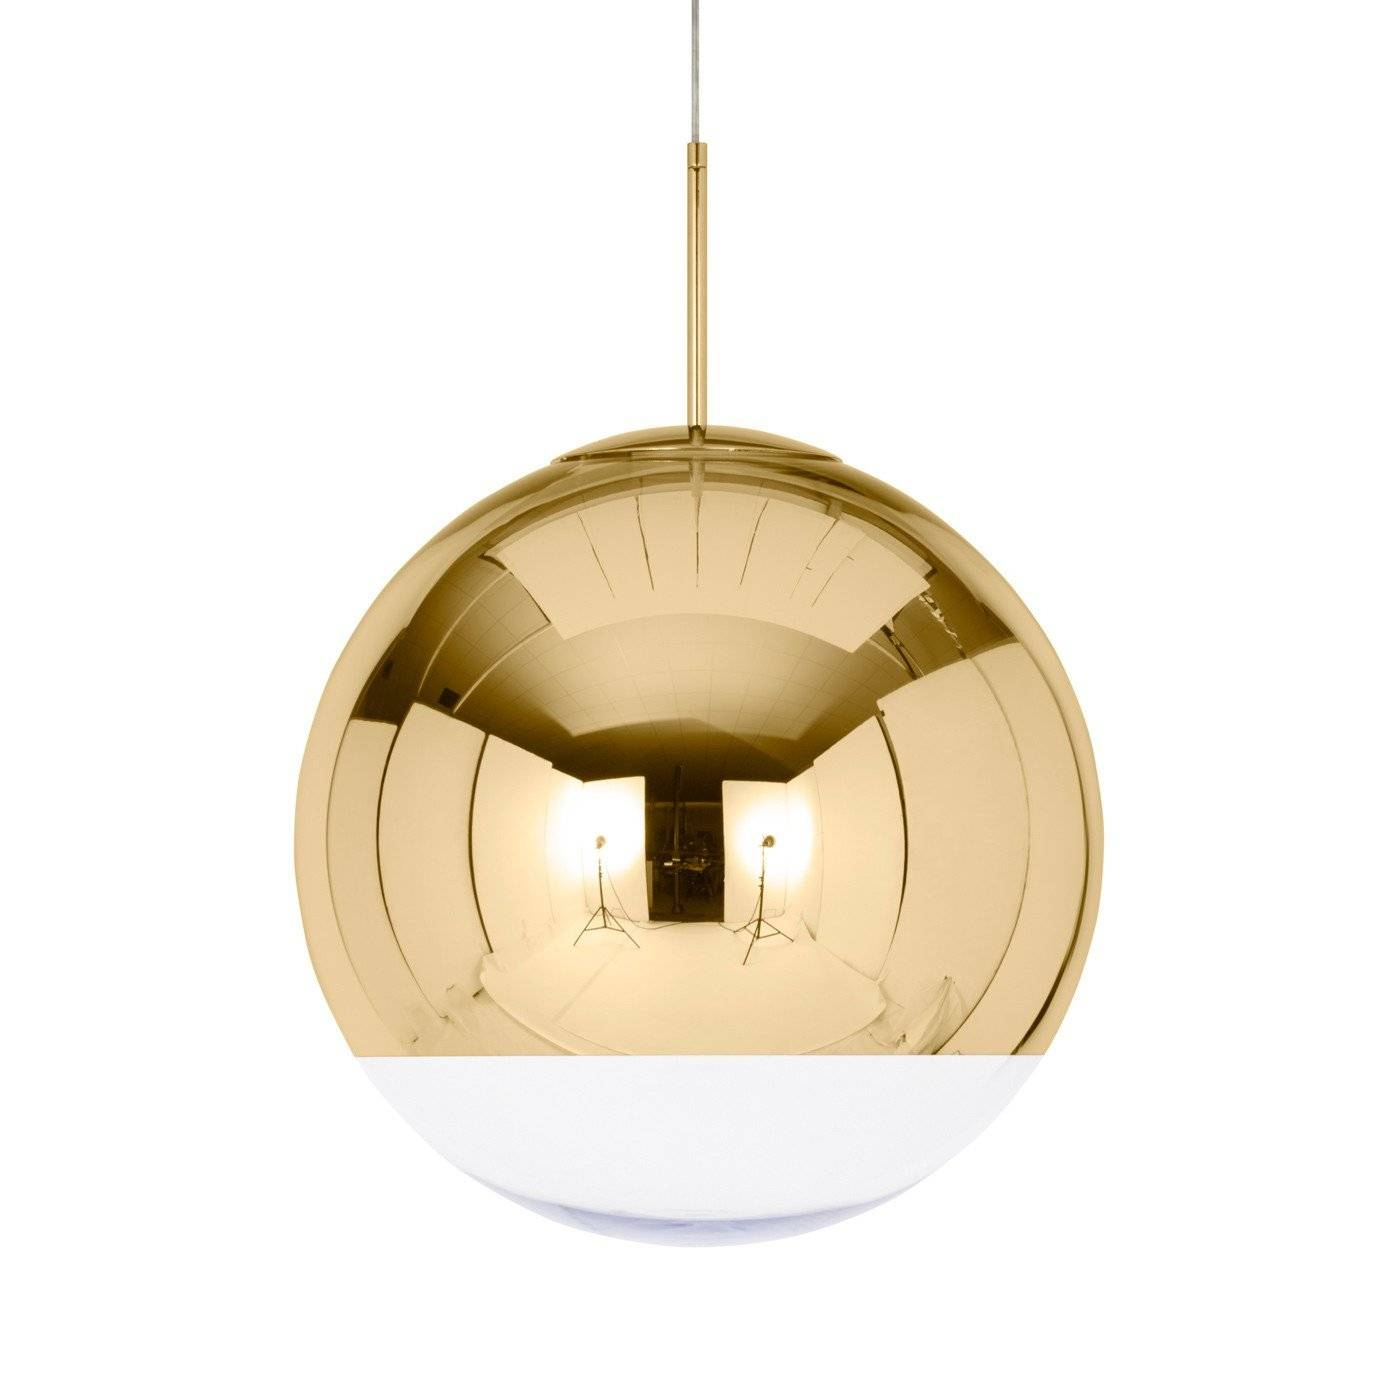 Mirror Ball Pendant Light for Disco Ball Ceiling Lights Fixtures (Image 12 of 15)